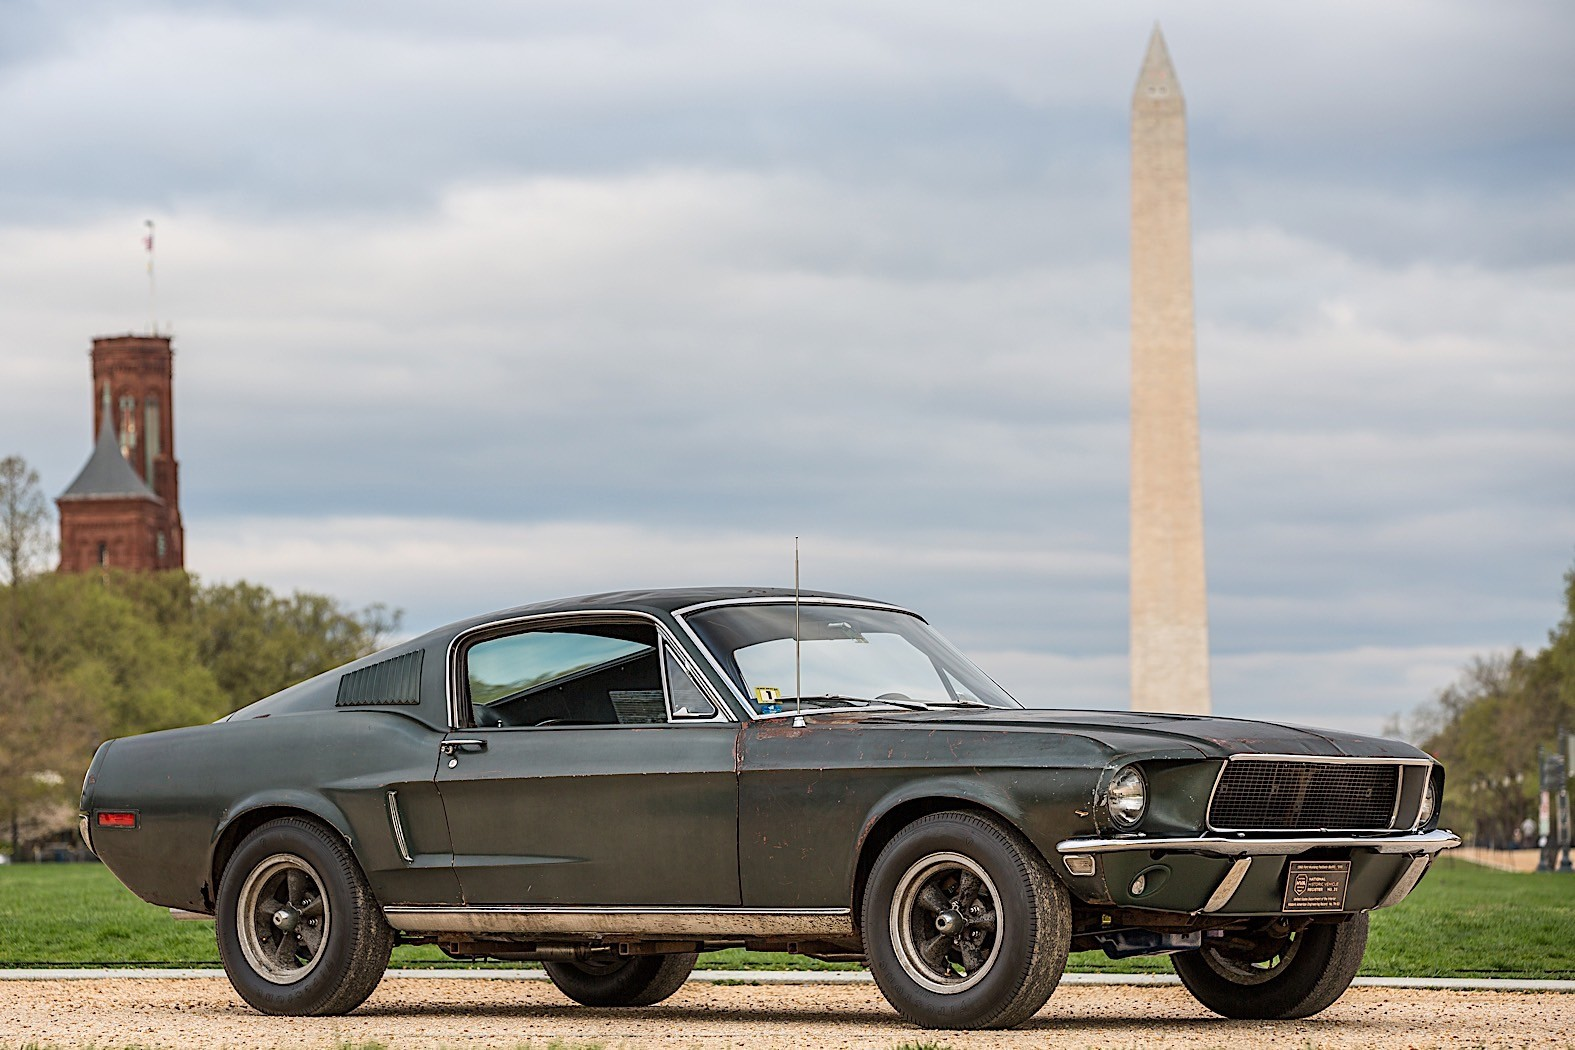 original 1968 bullitt mustang to be shown in washington autoevolution. Black Bedroom Furniture Sets. Home Design Ideas